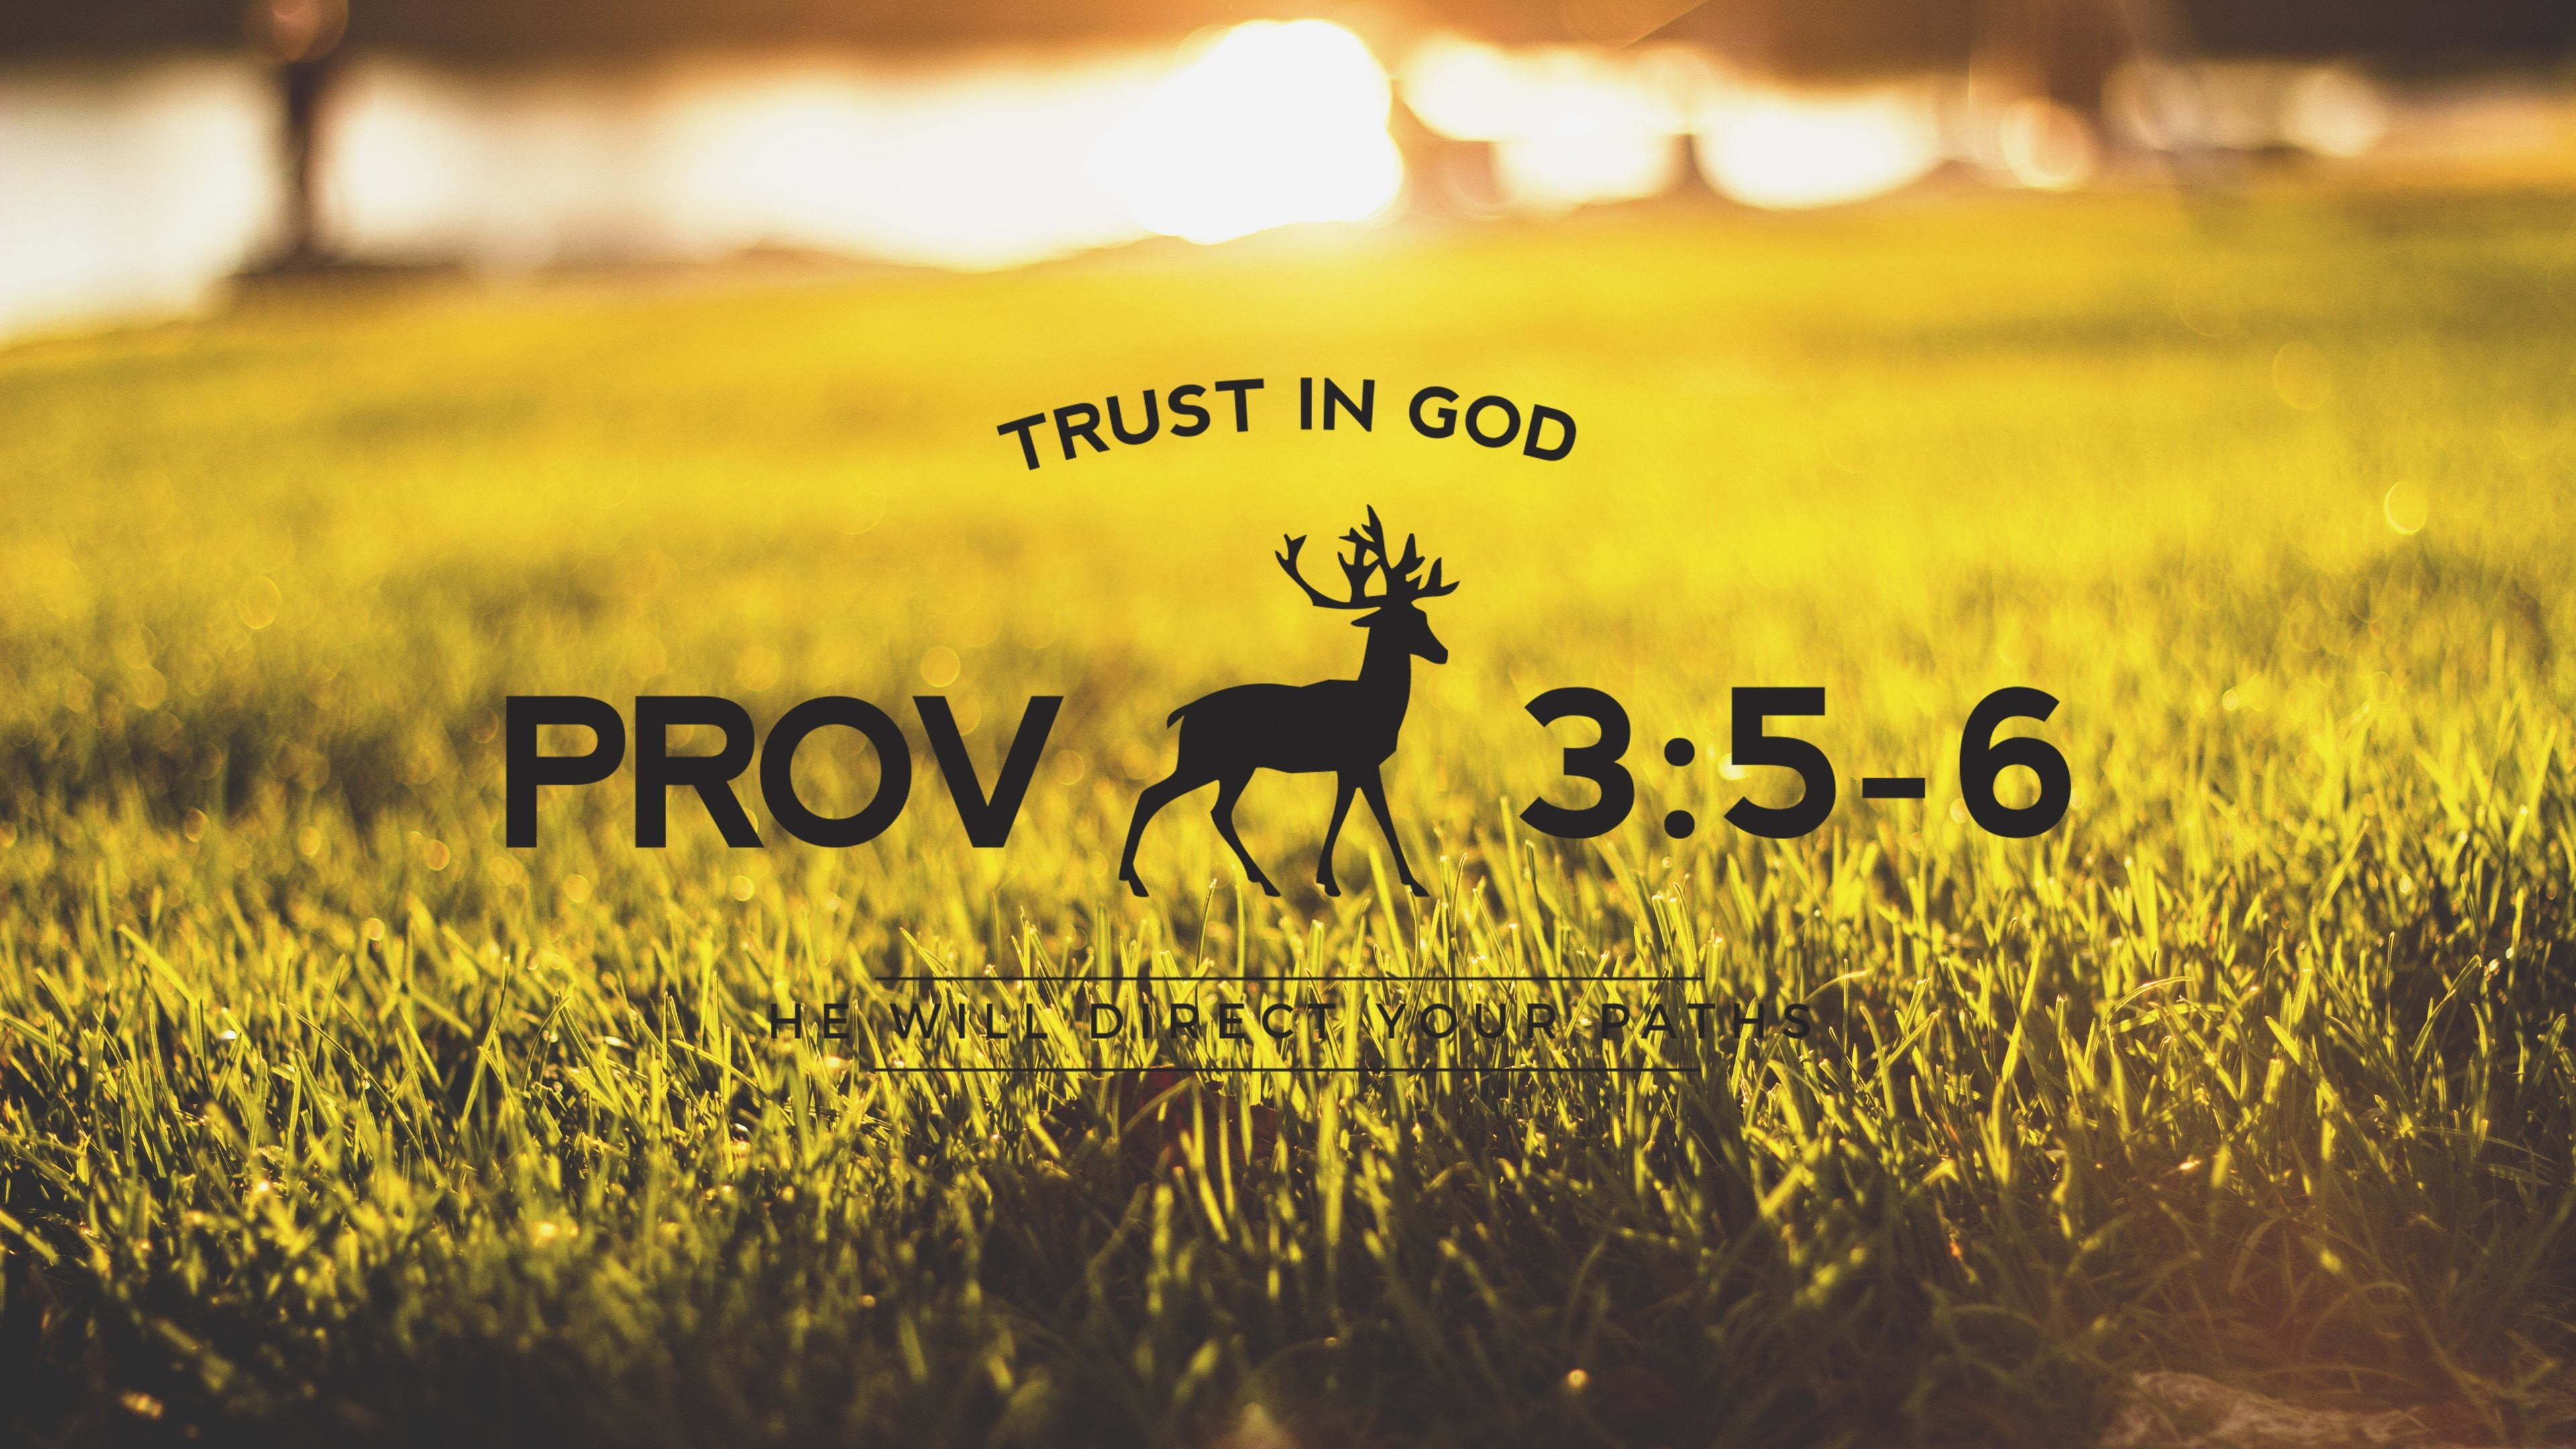 Bible Verse Pictures Wallpaper (58+ Images